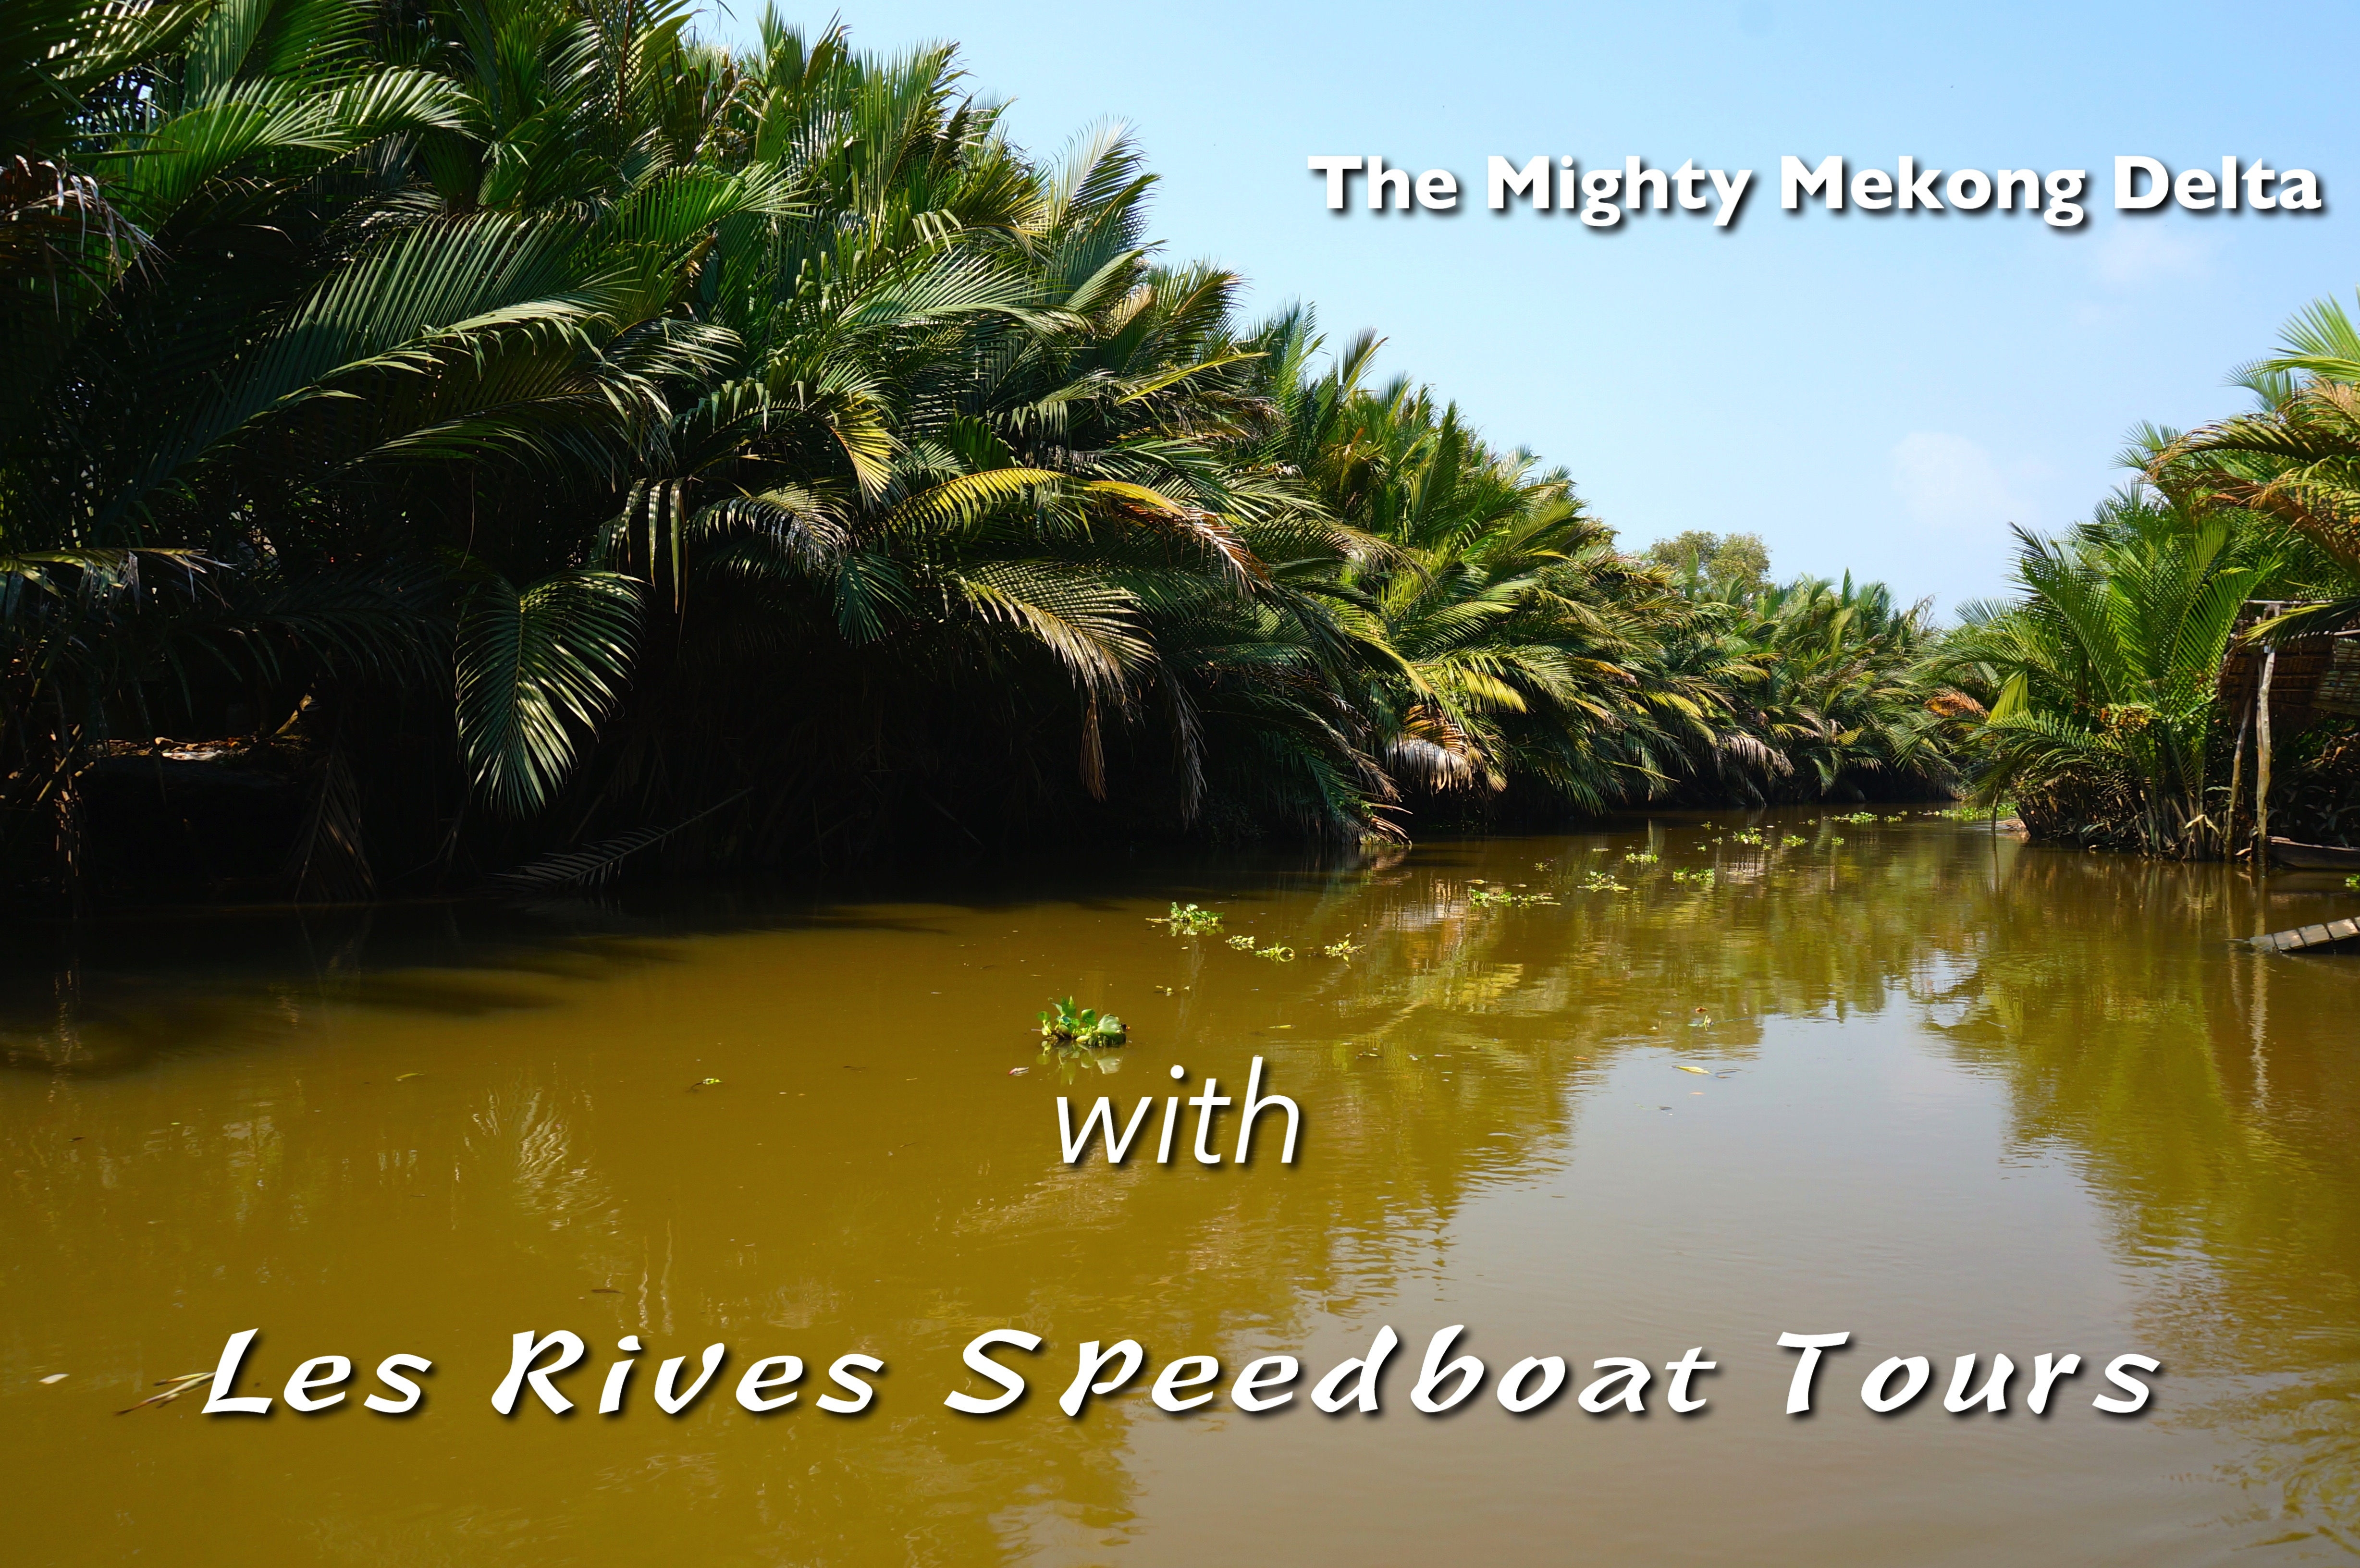 Mekong Delta Speedboat Tour with Les Rives